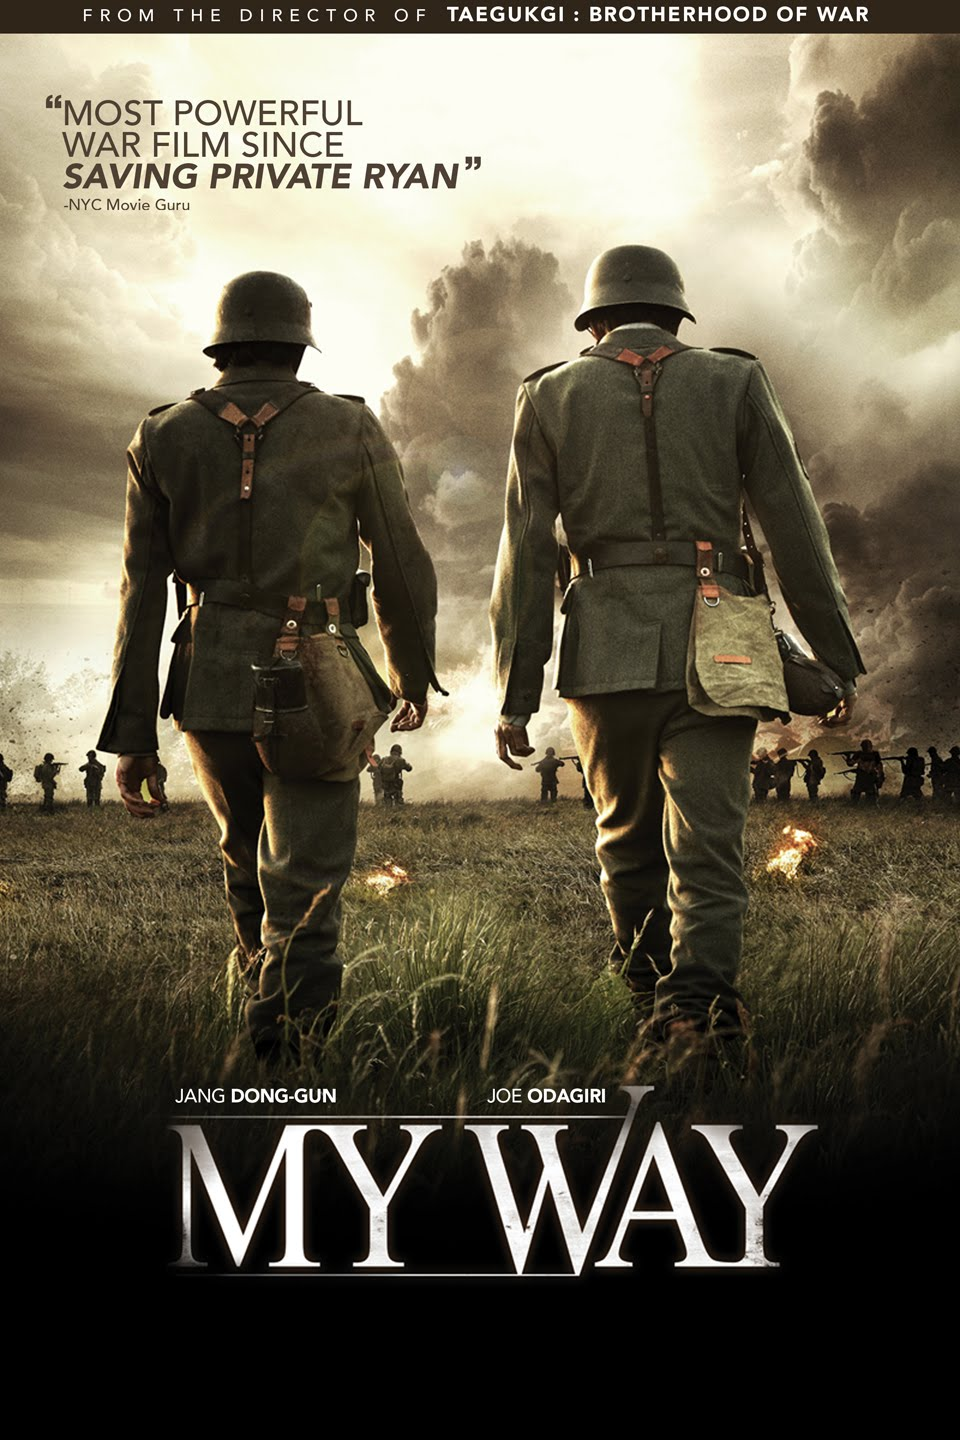 My Way-Mai wei